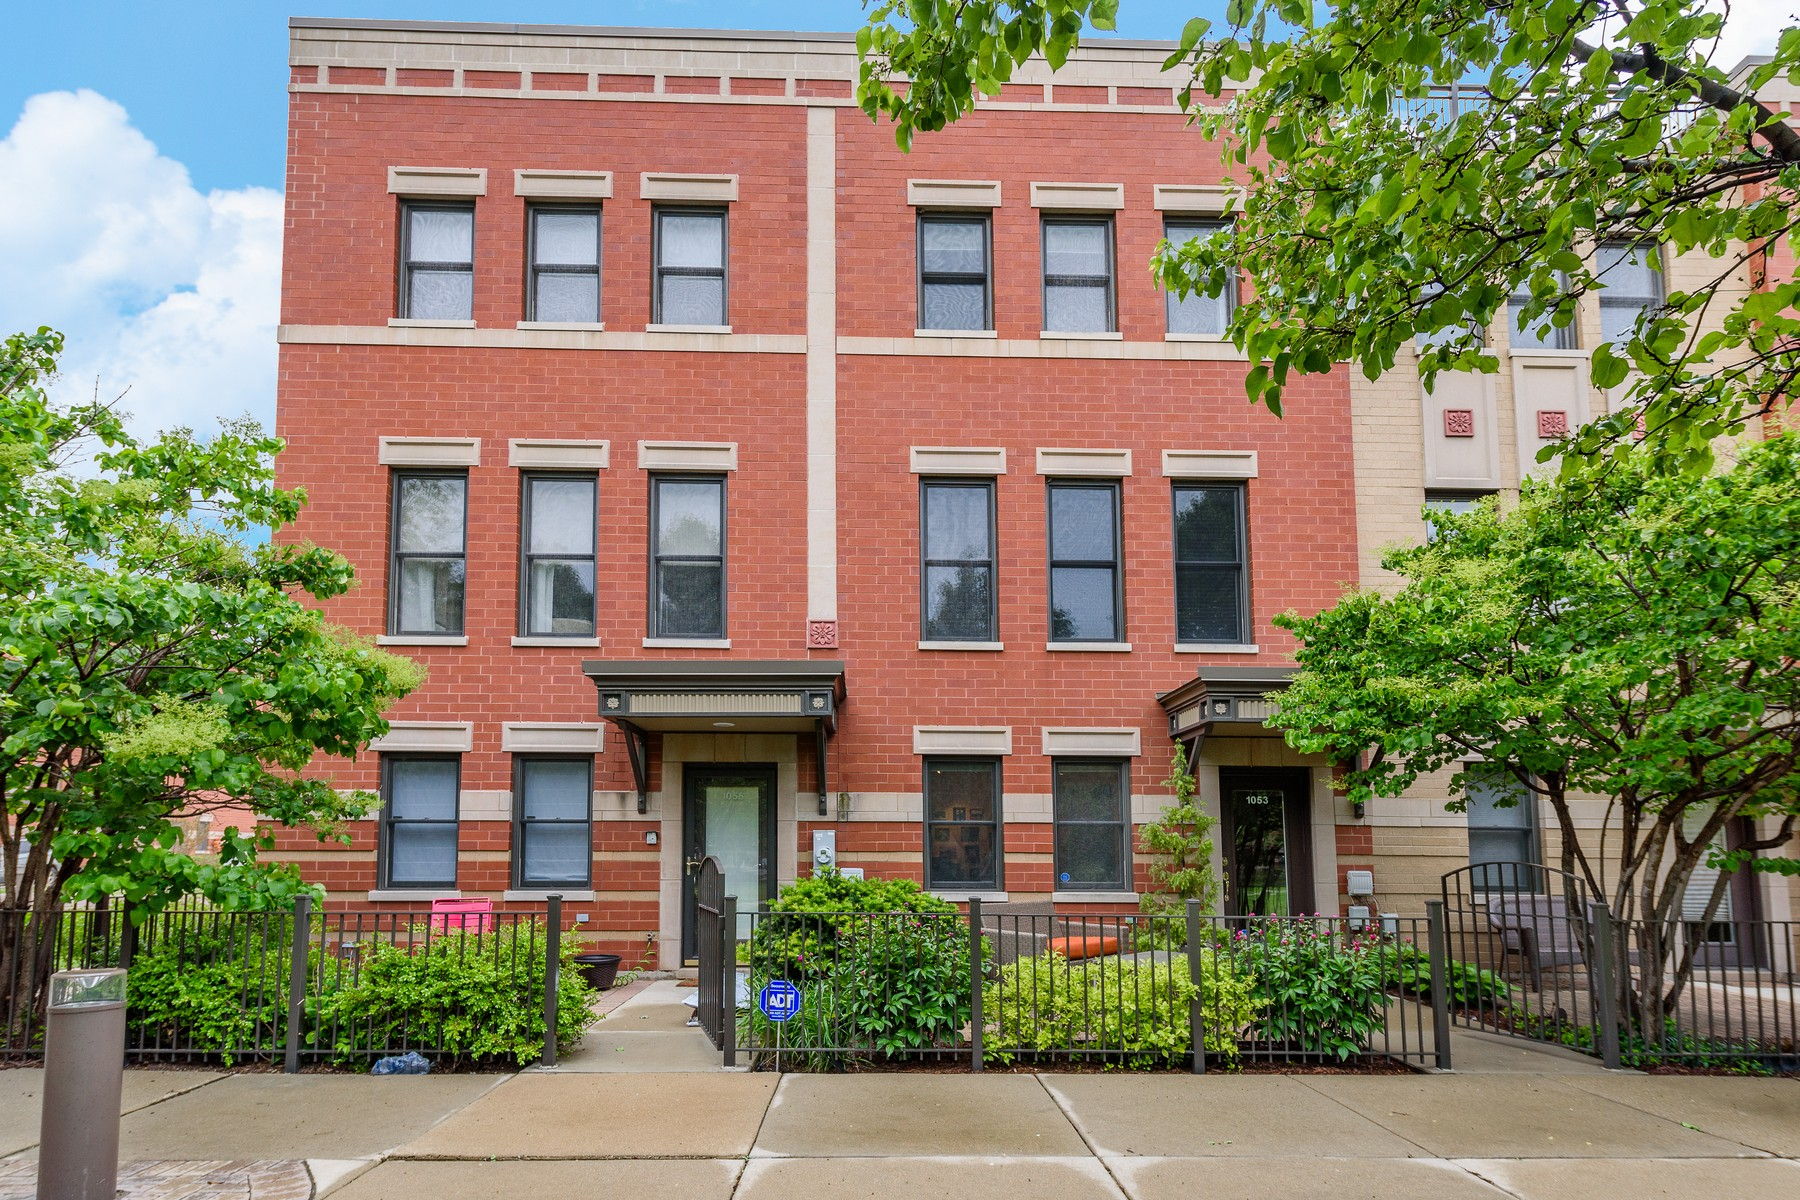 Nhà phố vì Bán tại Completely Renovated River North Townhome! 1053 N Kingsbury Street Near North Side, Chicago, Illinois, 60610 Hoa Kỳ